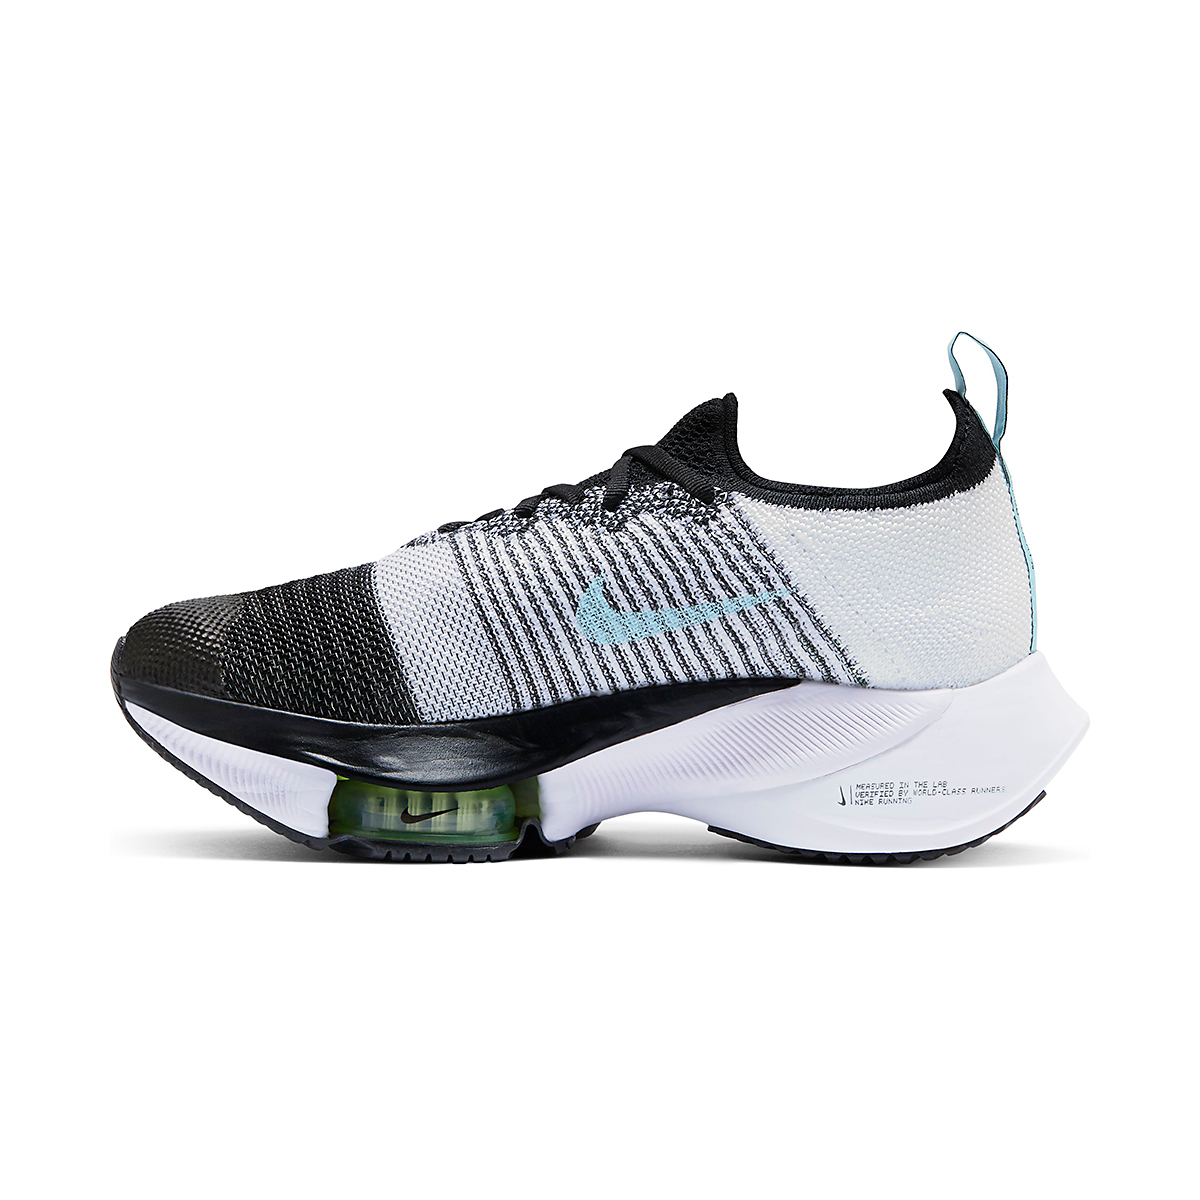 Women's Nike Air Zoom Tempo NEXT% Running Shoe - Color: Black/Glacier Ice-White-Barley Volt - Size: 5 - Width: Regular, Black/Glacier Ice-White-Barley Volt, large, image 2